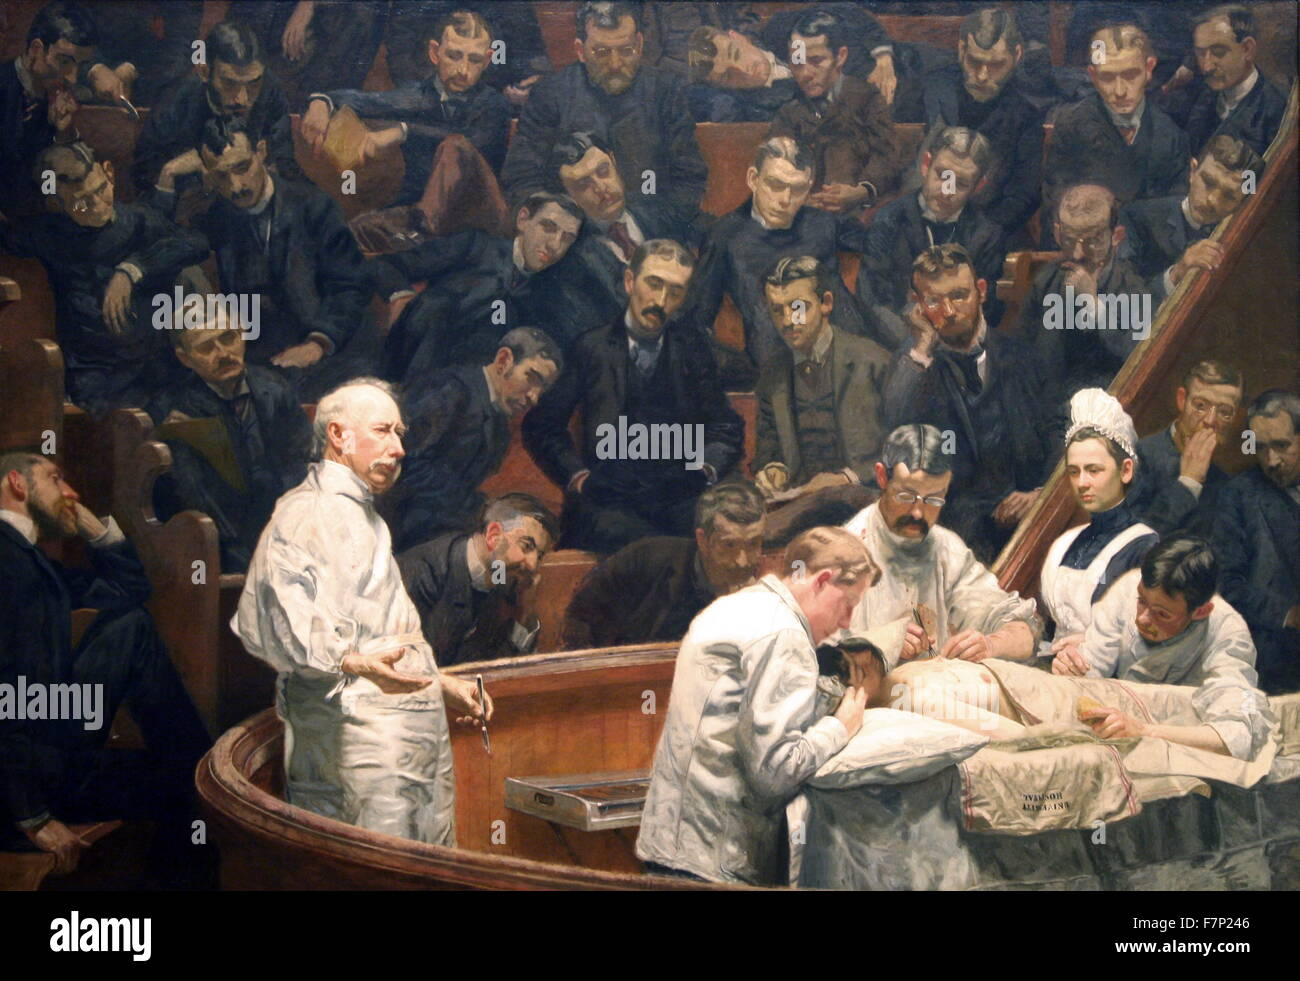 The Agnew Clinic, or, The Clinic of Dr. Agnew, is an 1889 oil painting by American artist Thomas Eakins, 1844-1916. - Stock Image